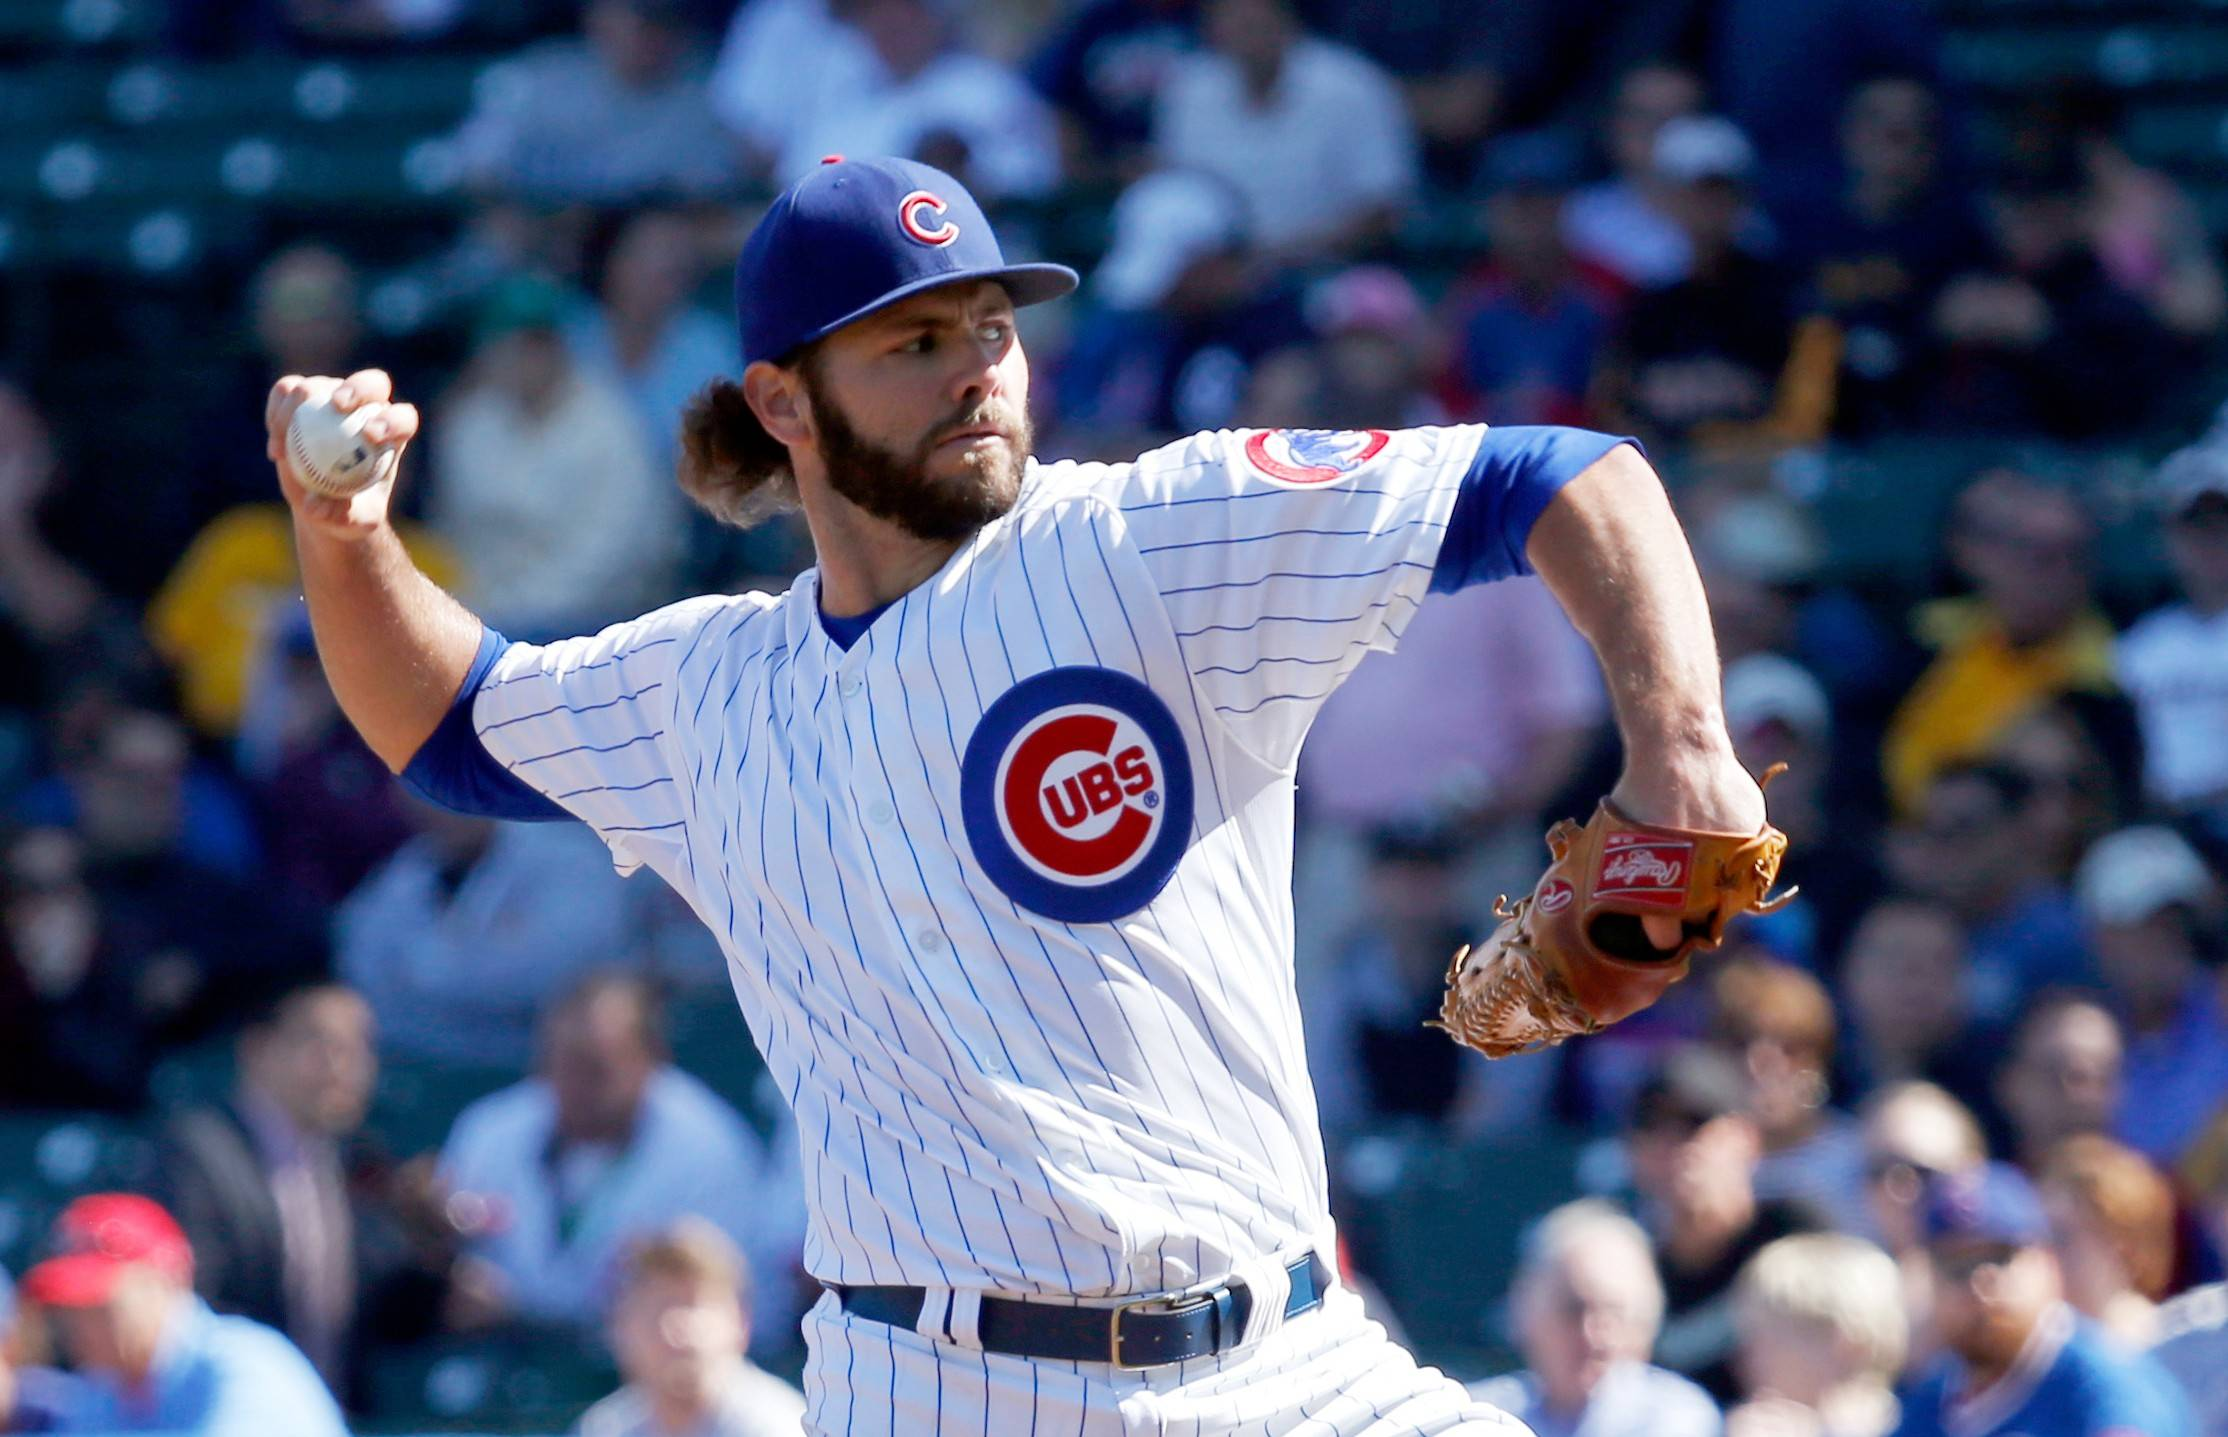 Jake Arrieta will come off the disabled list Wednesday and is expected to make his first start of the season either Saturday or Sunday against the Cardinals at Wrigley Field.